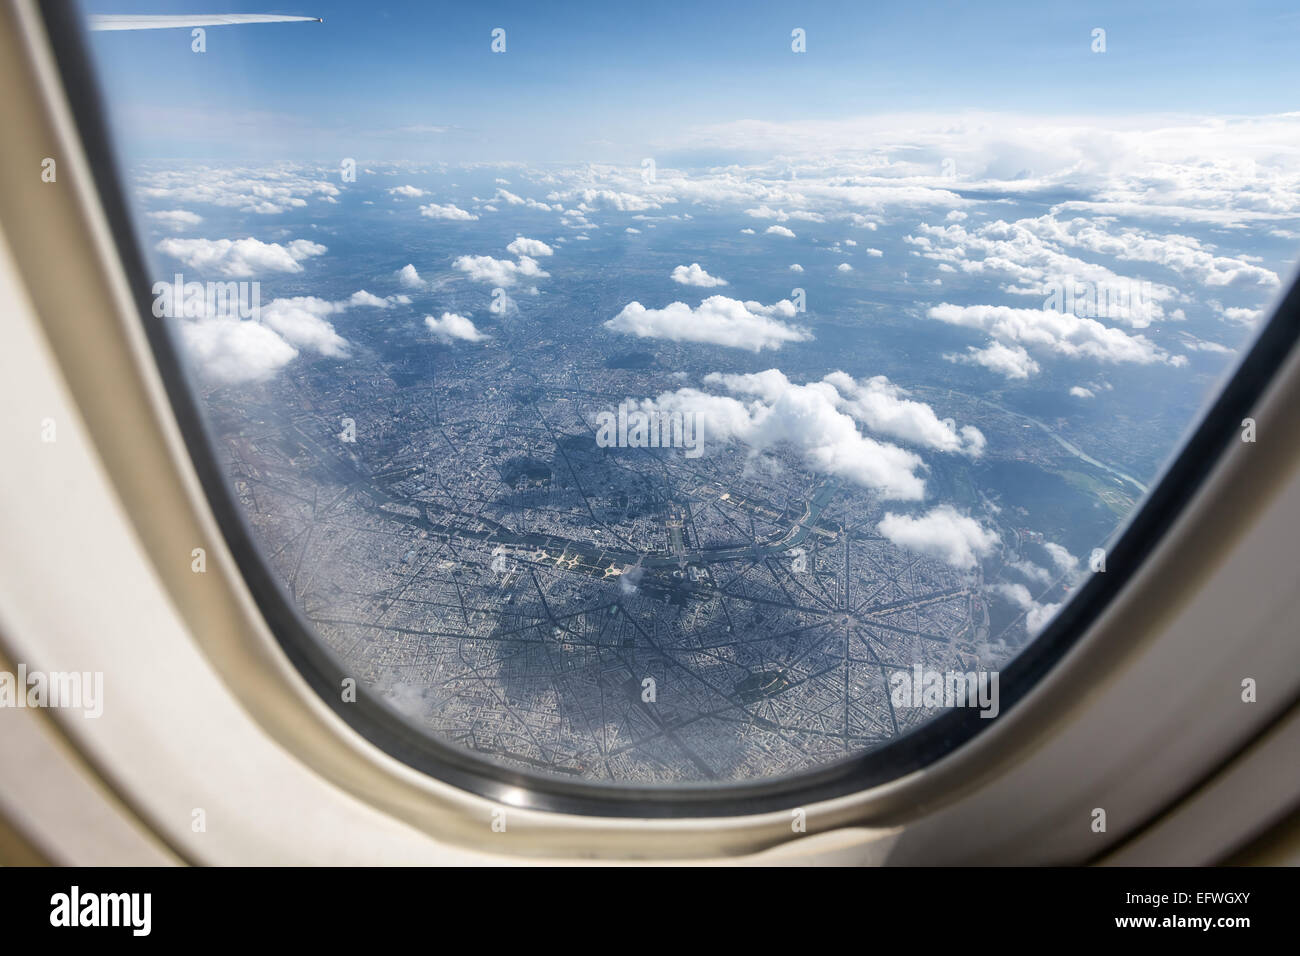 Paris seen from an airplane window, Paris, France, Europe, EU - Stock Image